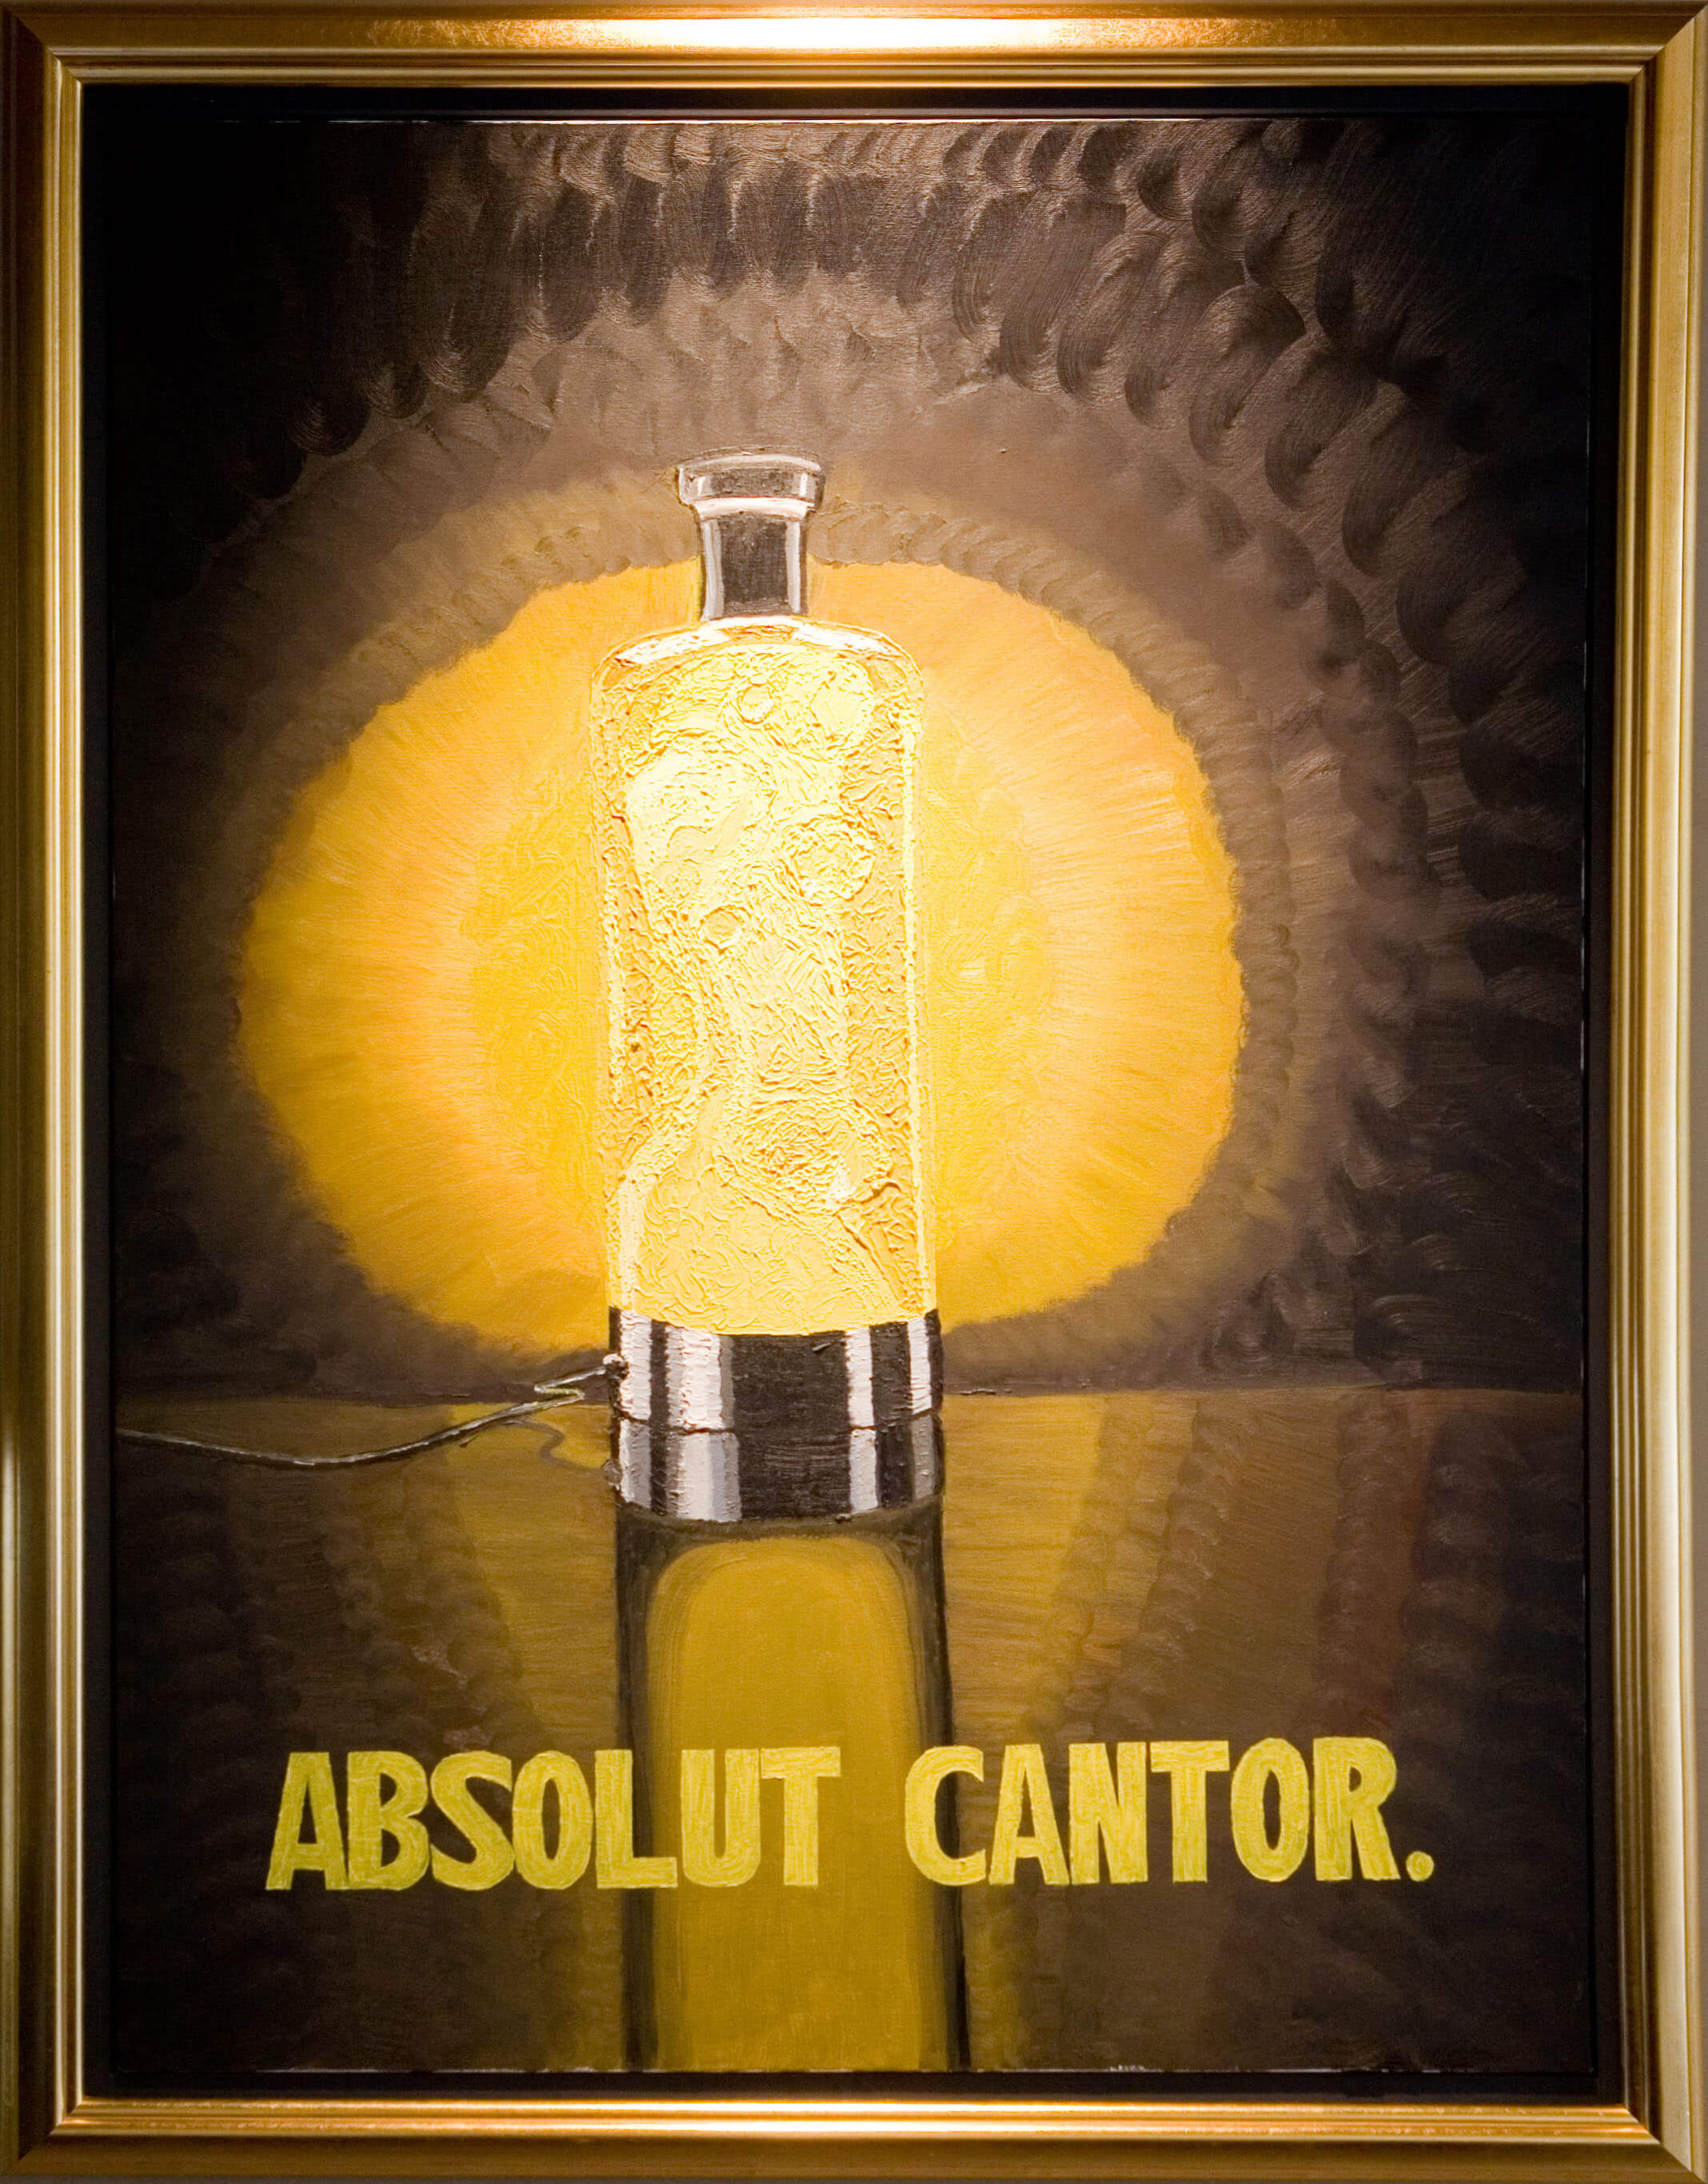 Absolut Cantor by David Michael Cantor